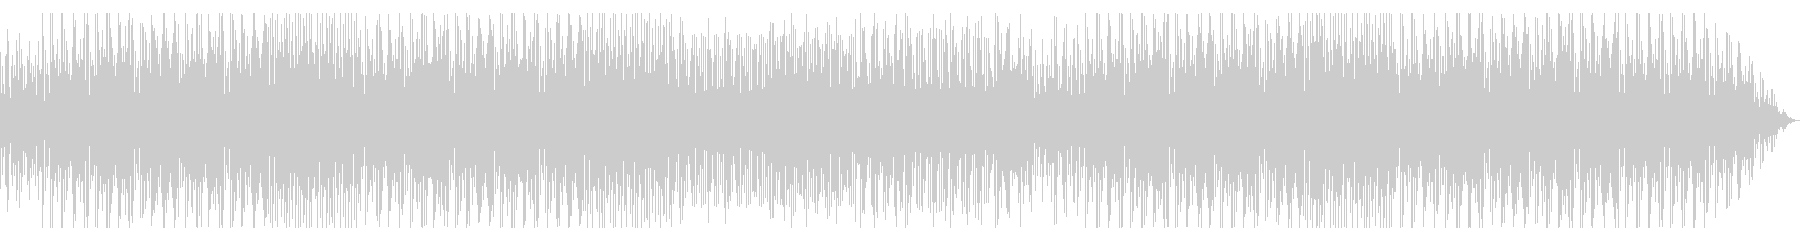 A comical town stranger African + Chinese style's unreproduced waveform